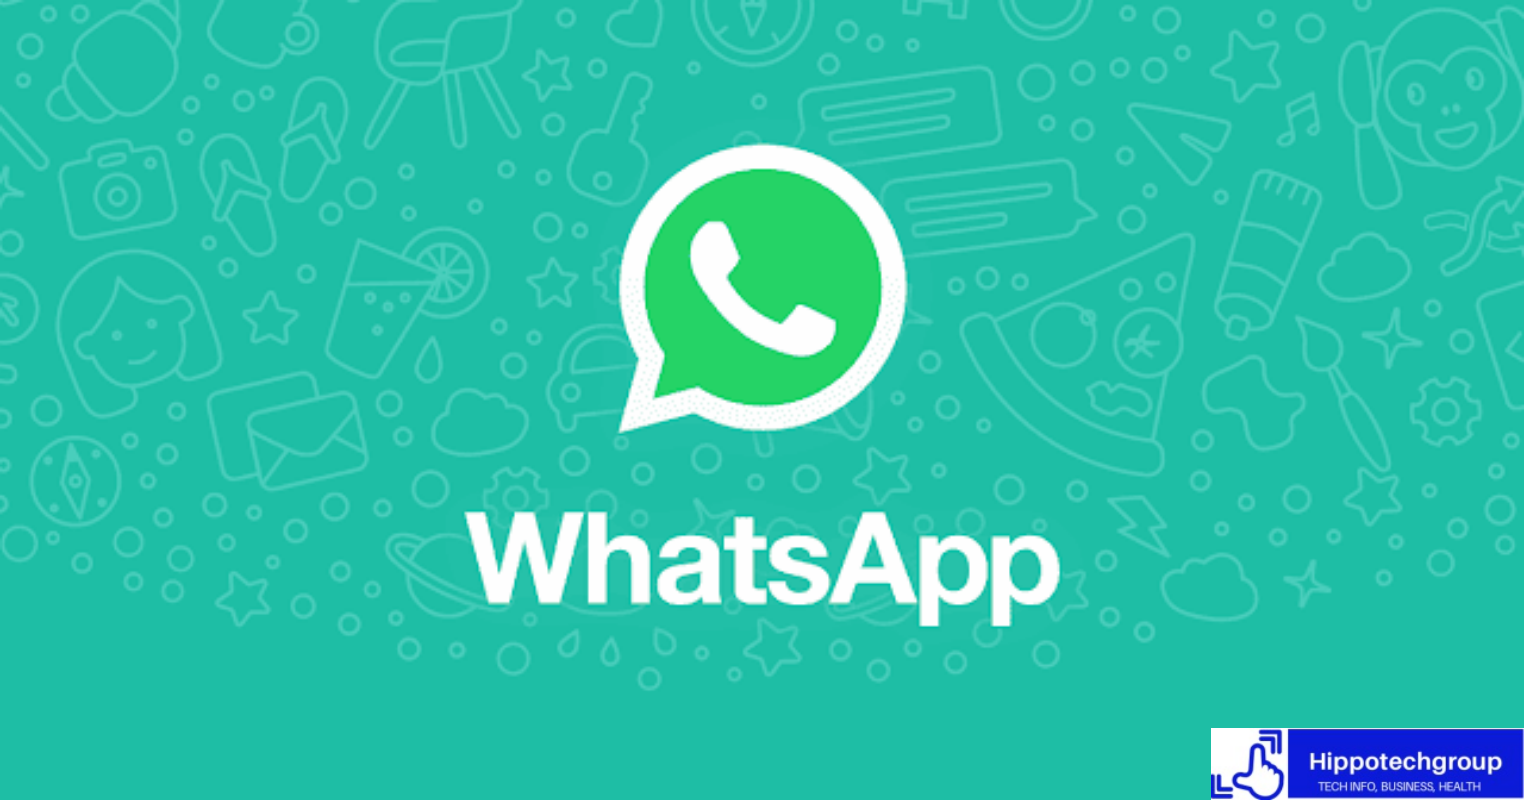 Control on Who Can Add You to Whatsapp Groups